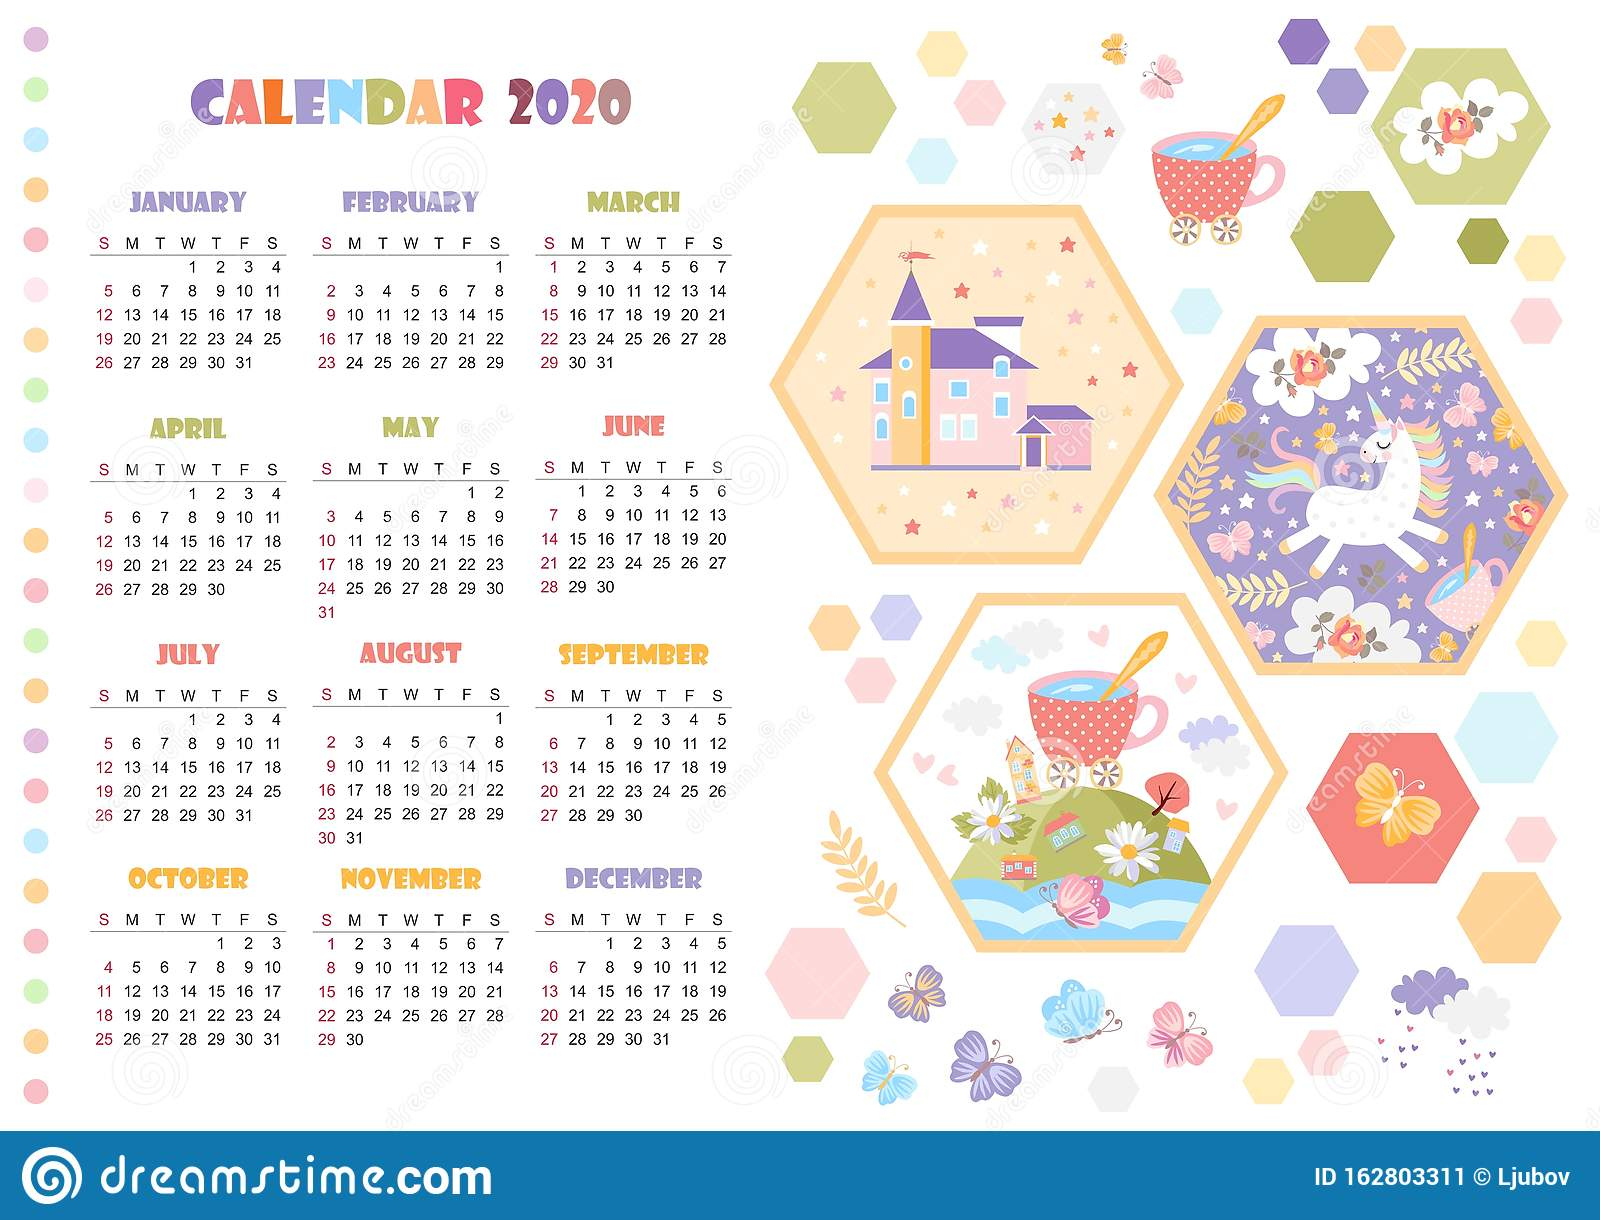 Cute Calendar For 2020 Year With Unicorn Magic Castle And